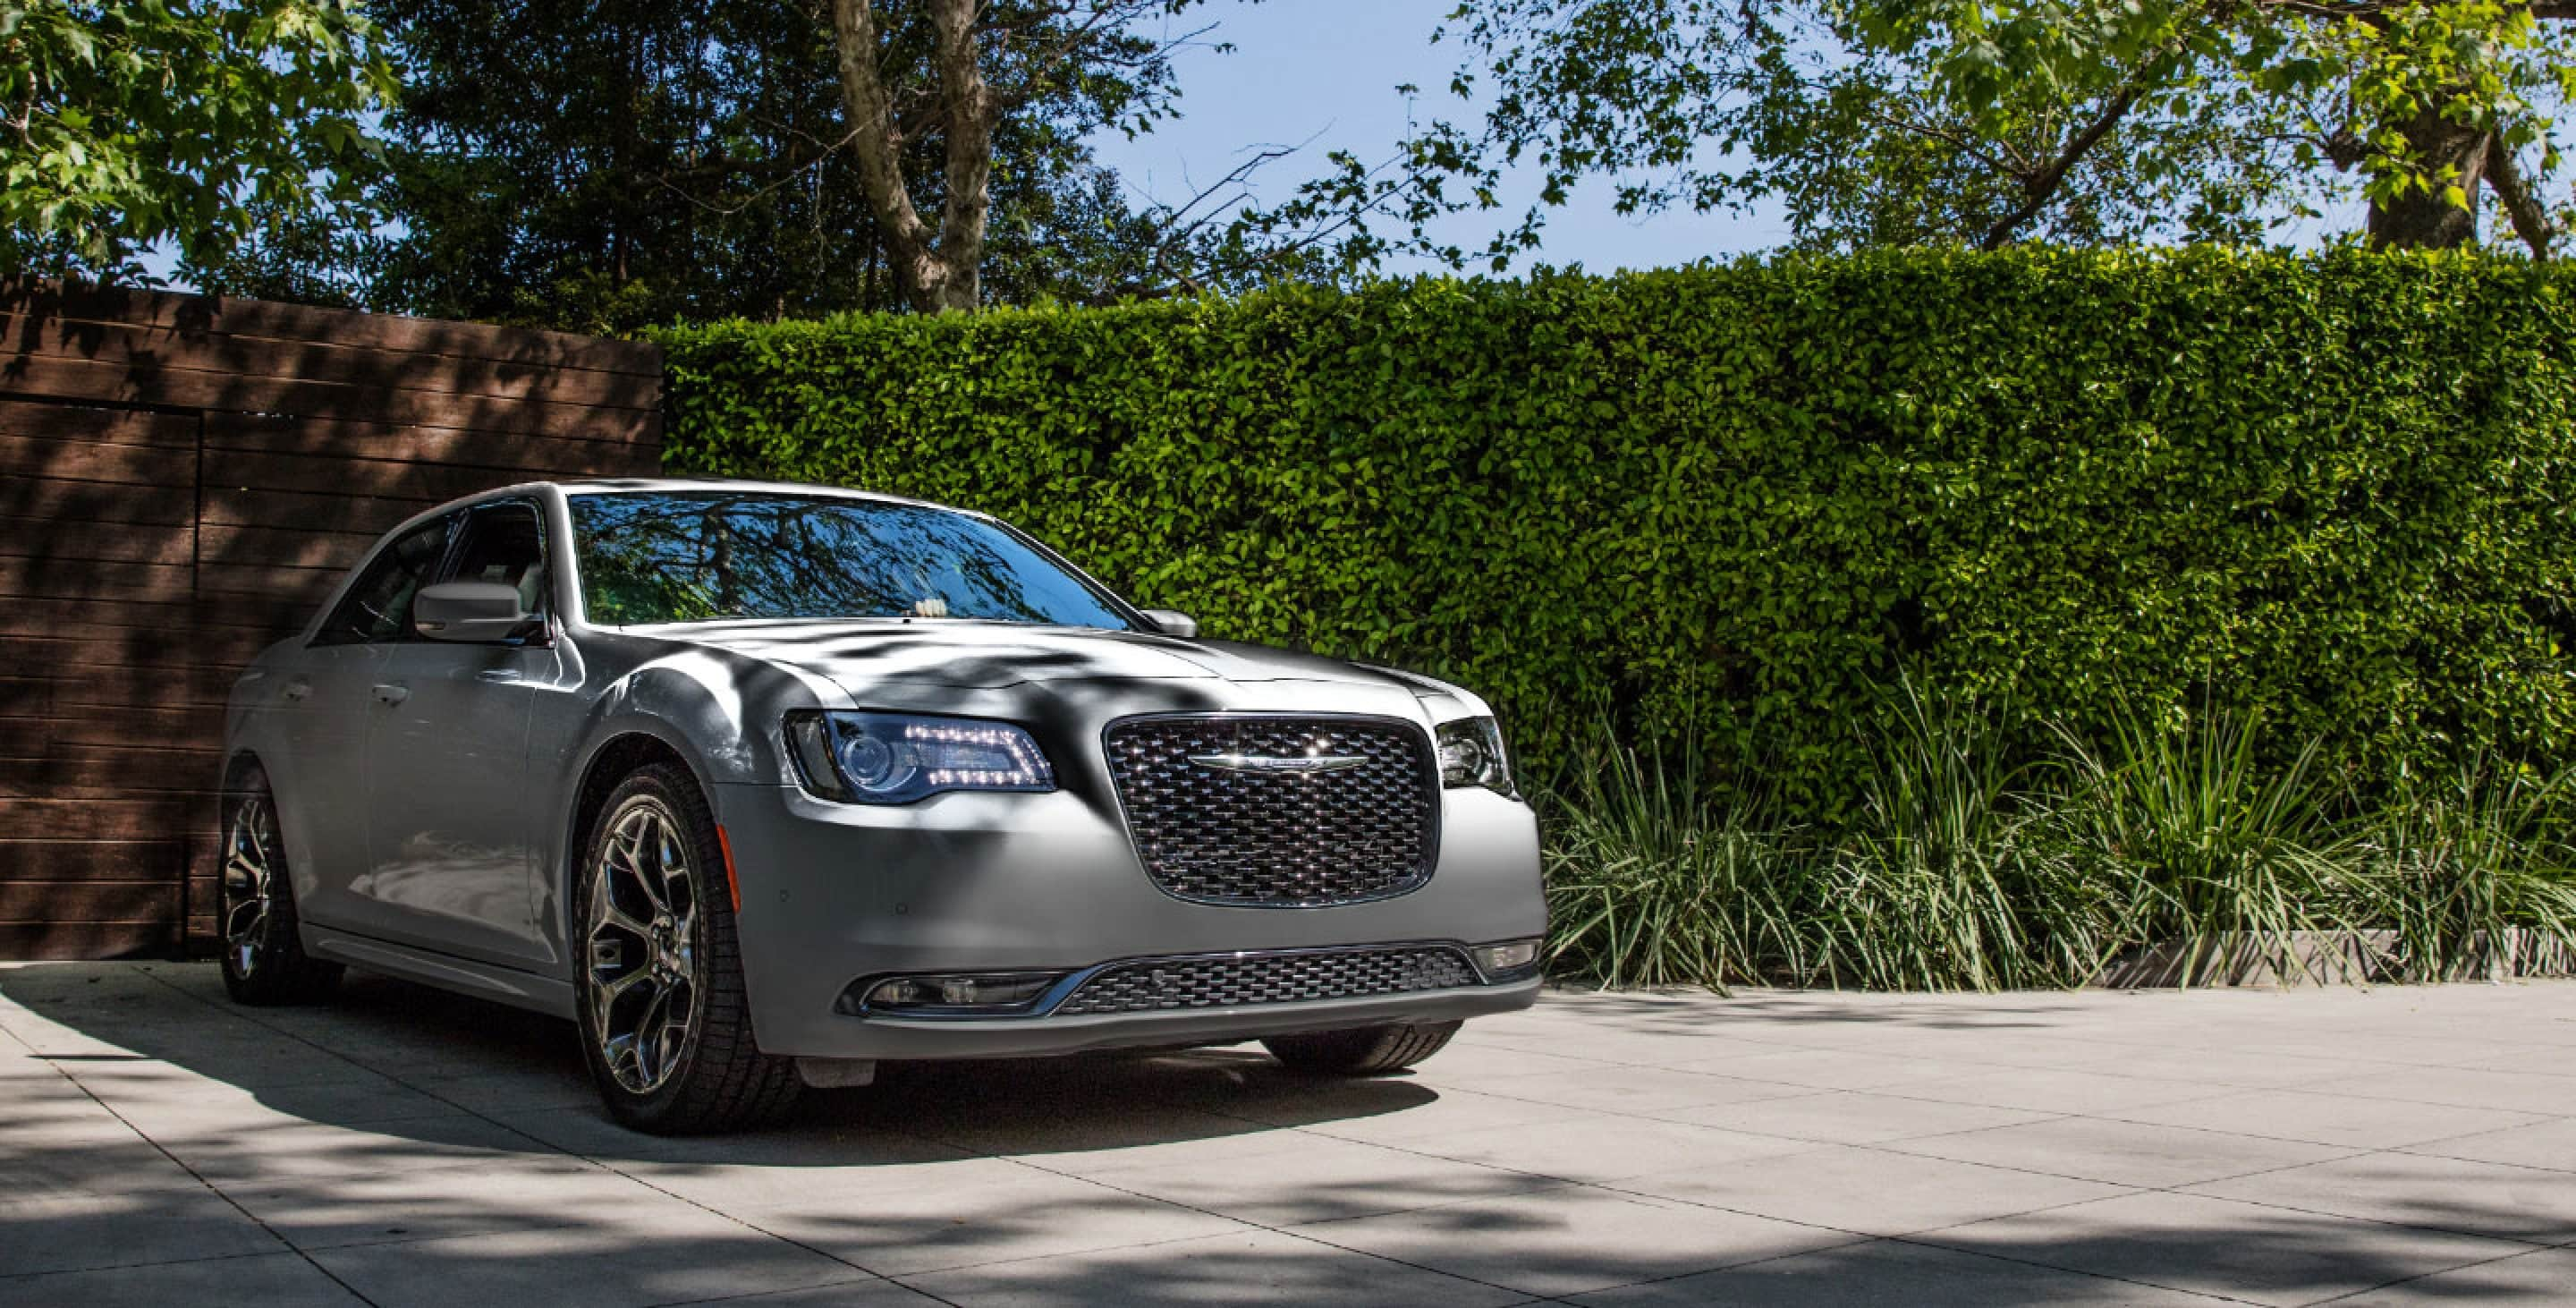 Dover Dodge Nj >> Chrysler 300 Lease Deals Nj | Lamoureph Blog